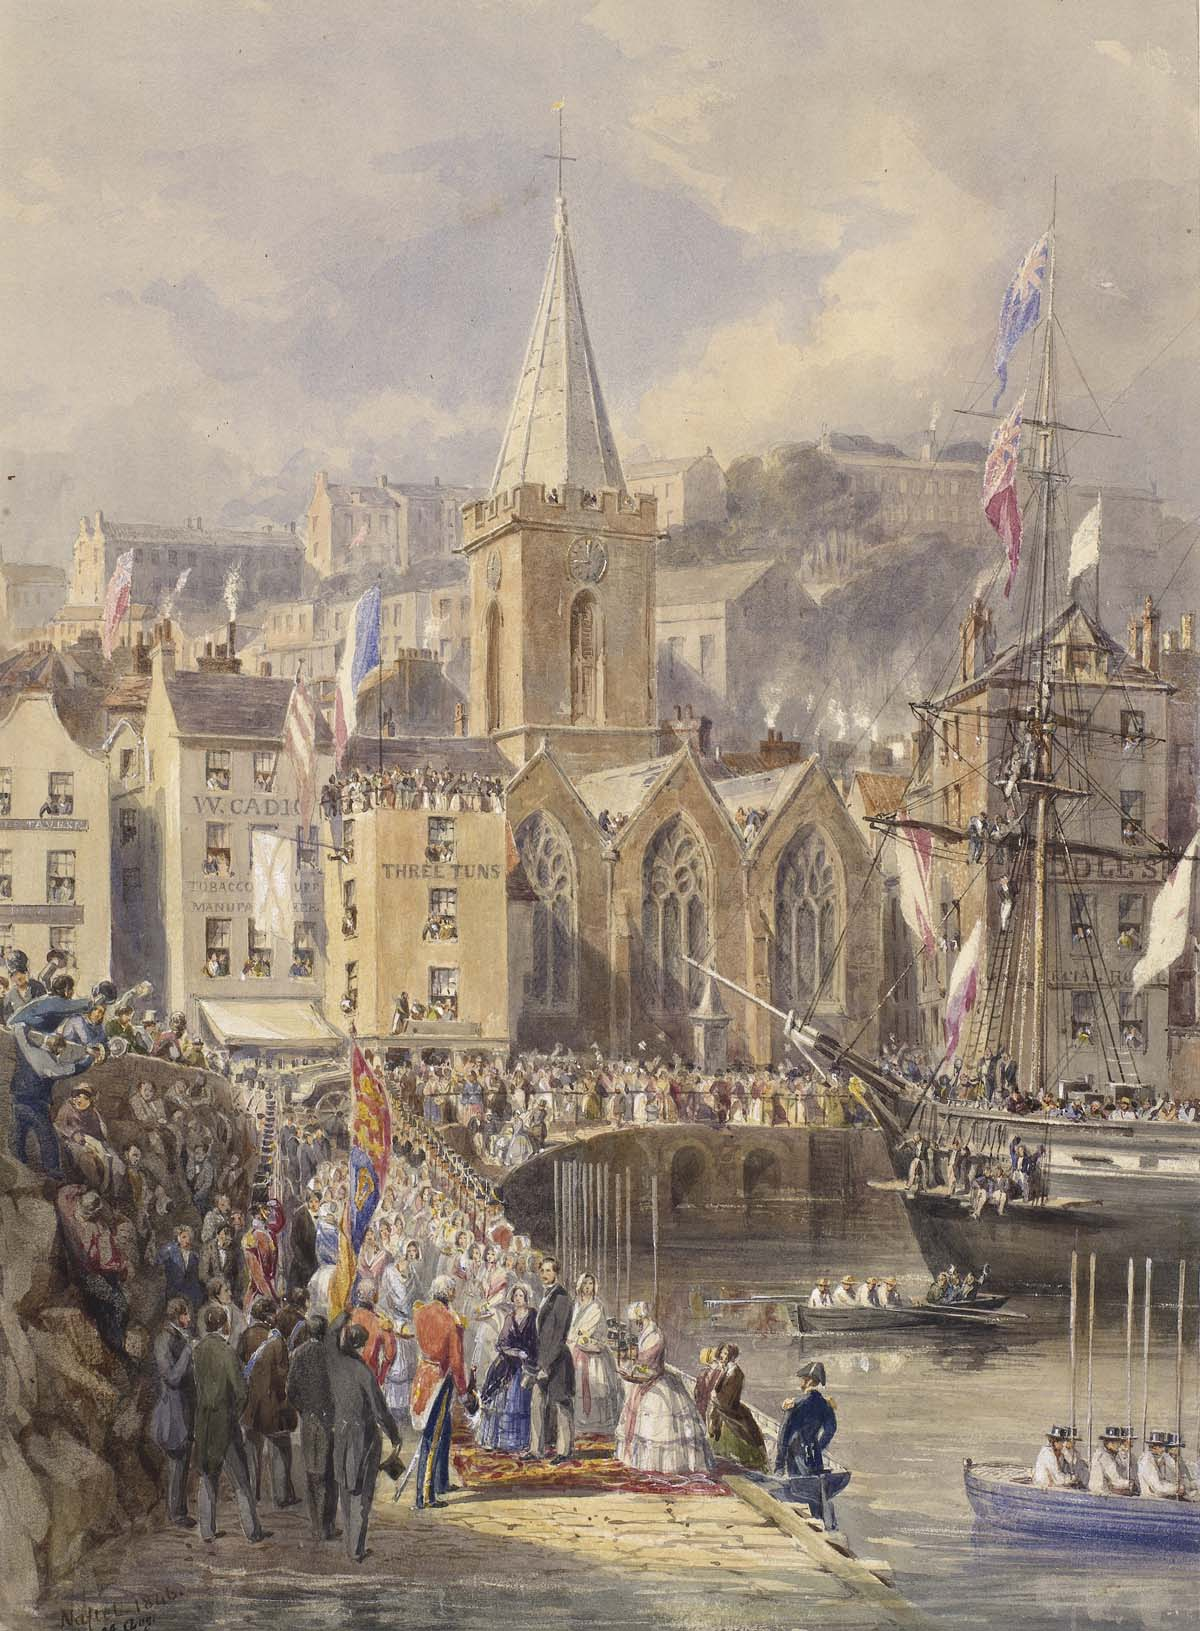 a watercolour painting of barge arriving at a port with a church in the background